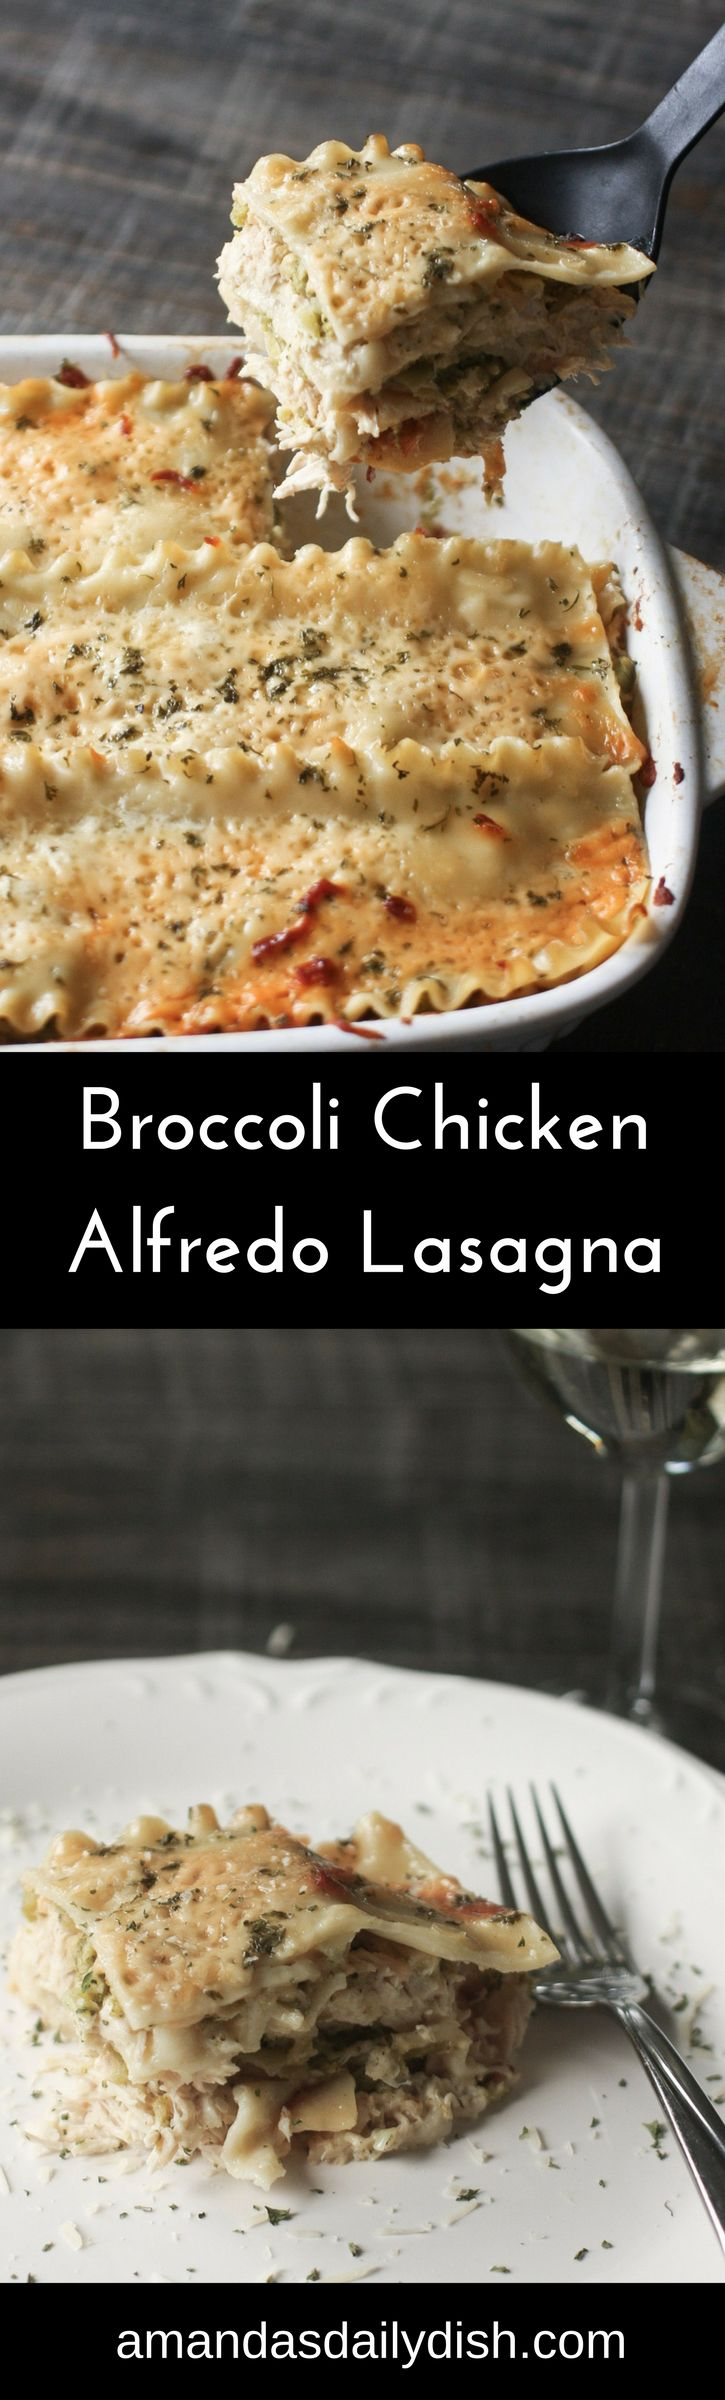 Broccoli Chicken Alfredo Lasagna is a rich and delicious twist on your classic tomato based lasagna. Alfredo Lovers behold!